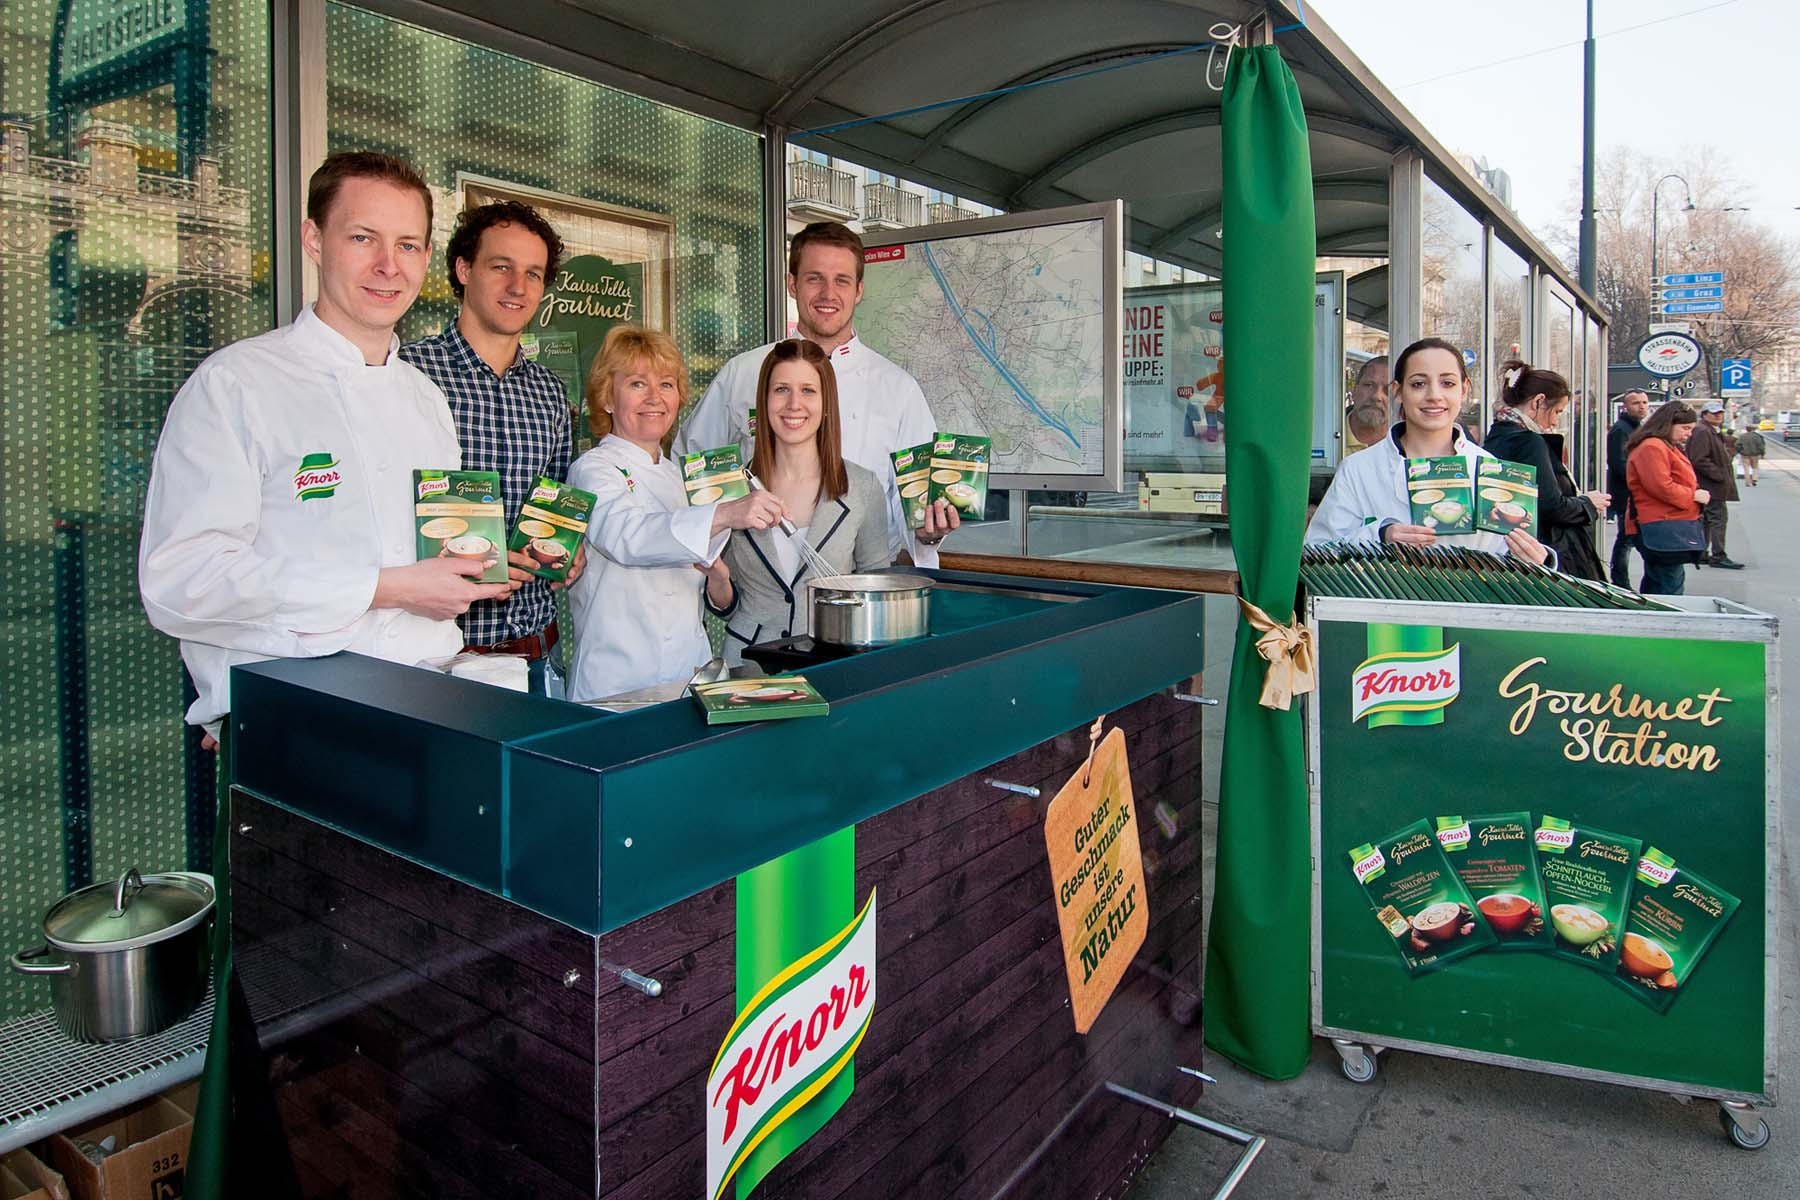 KNorr Gourmet Station Guerilla Marketing Division4 Wien Alex Zoubek